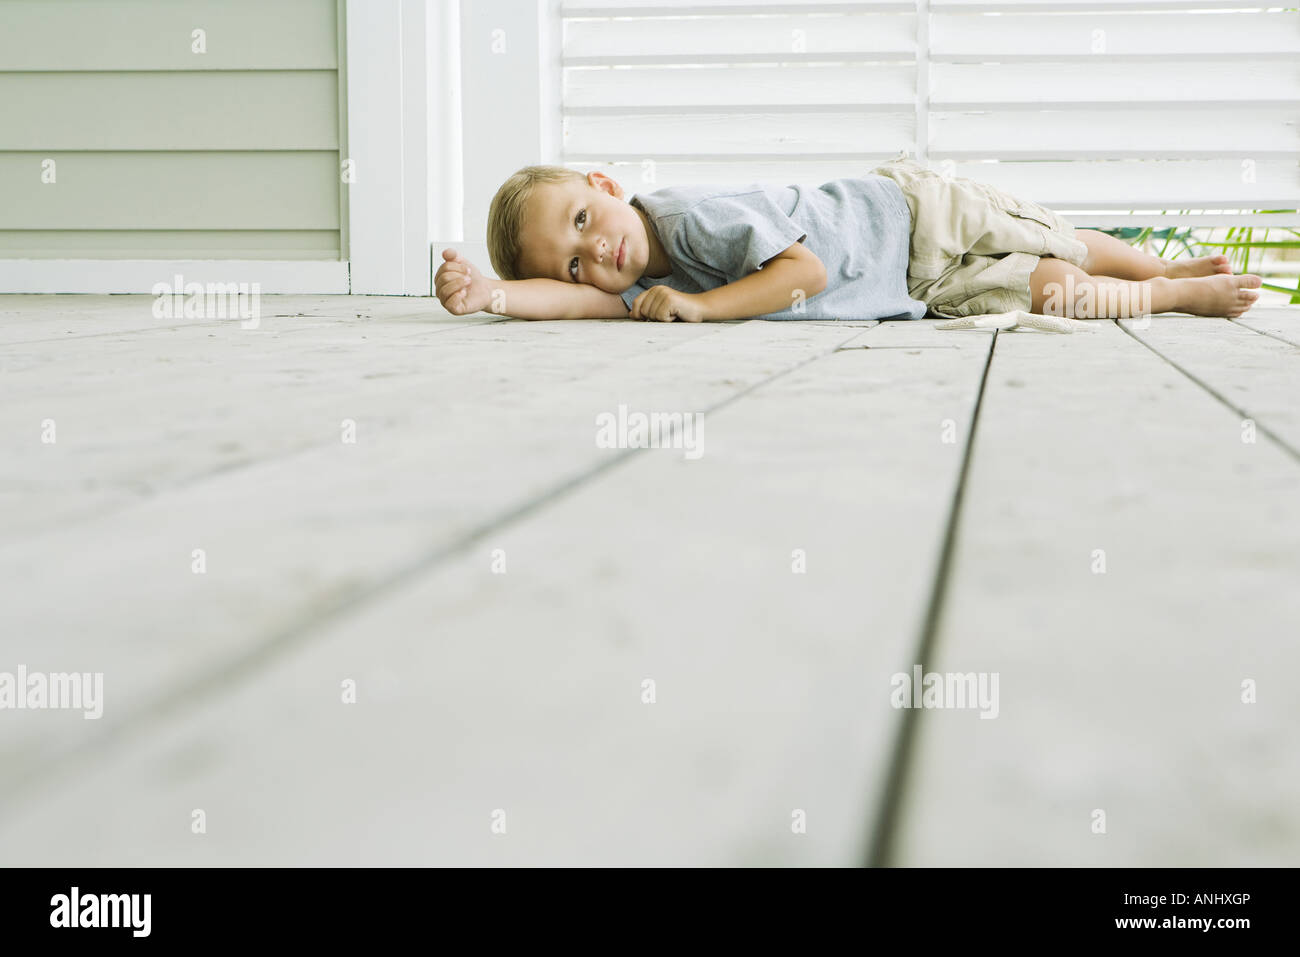 Boy lying on the ground next to starfish, head resting on arm Stock Photo